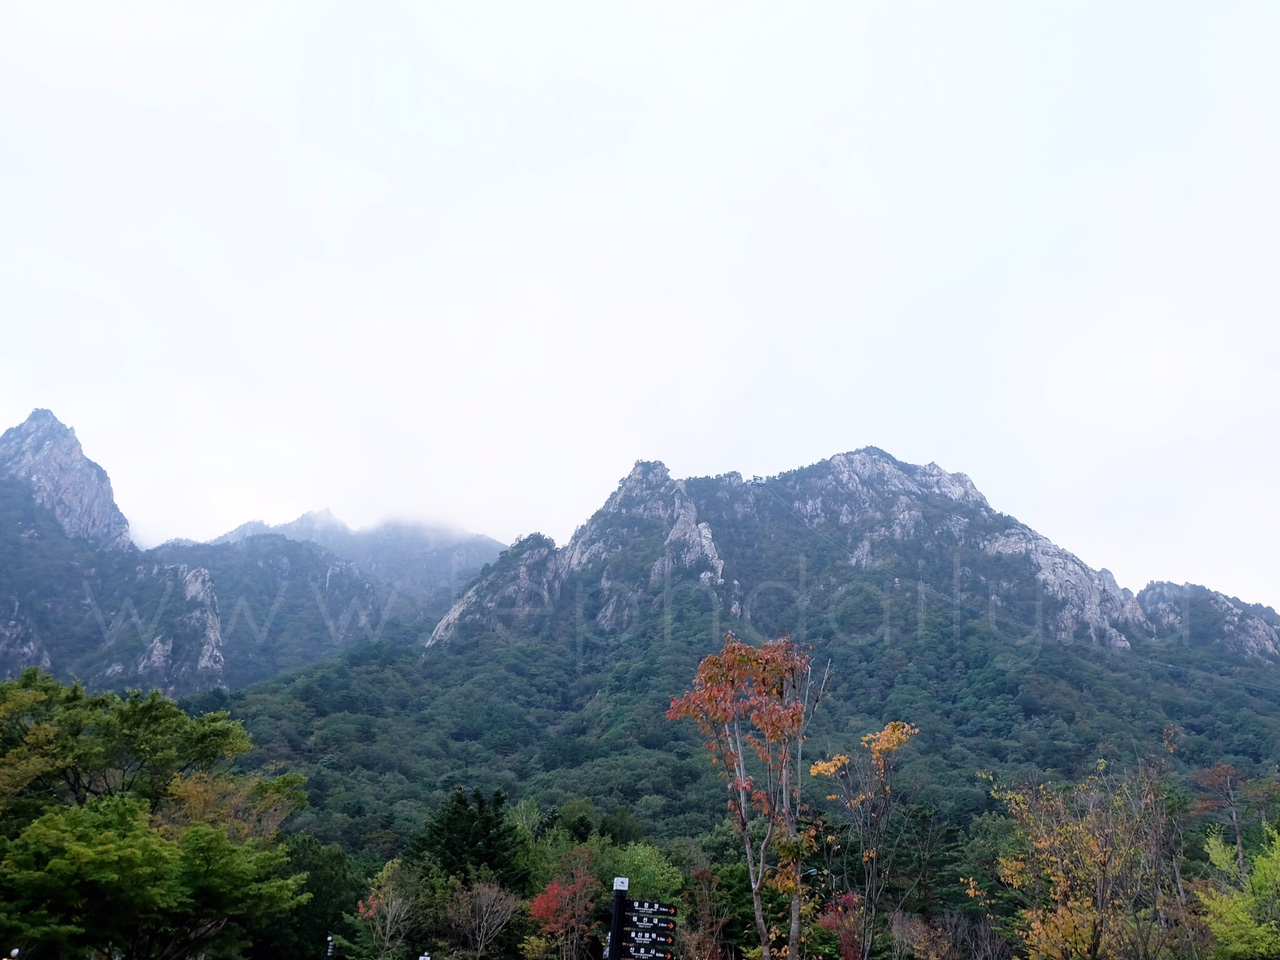 KOREA TRIP DAY 4 (MT. SORAK)